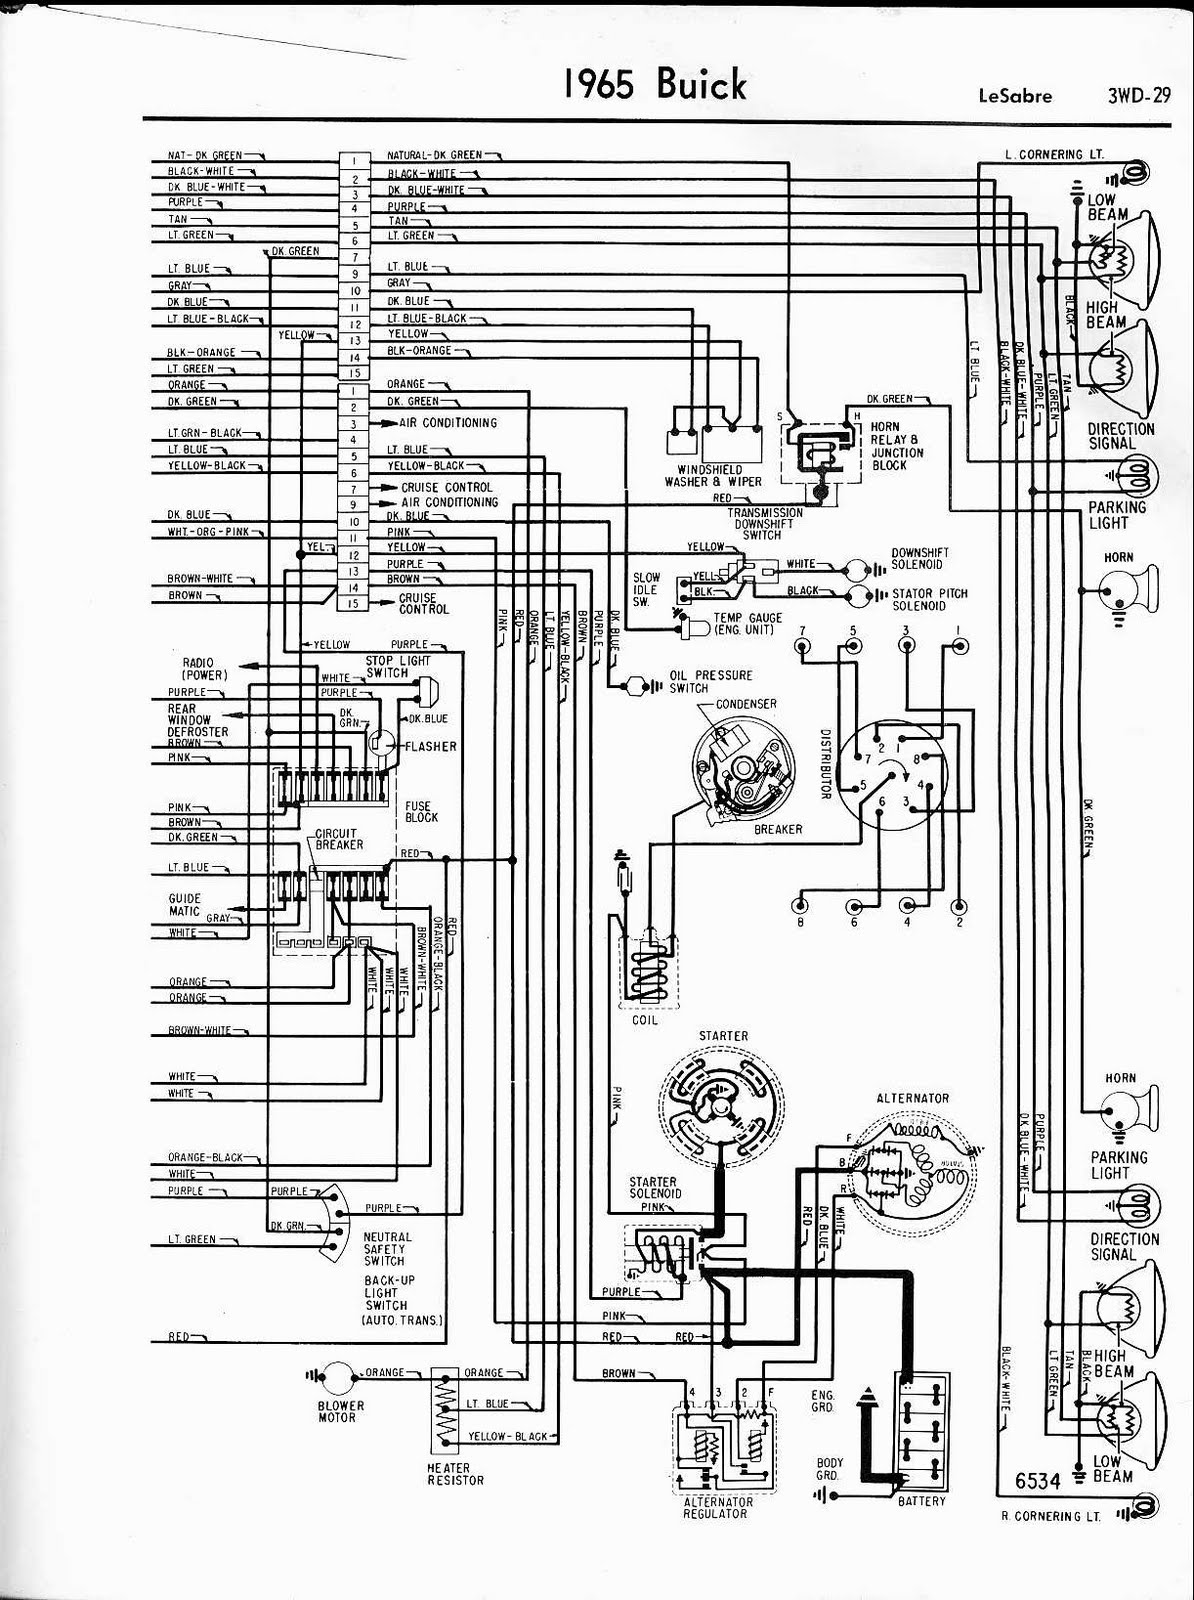 free auto wiring diagram 1965 buick lesabre front side. Black Bedroom Furniture Sets. Home Design Ideas